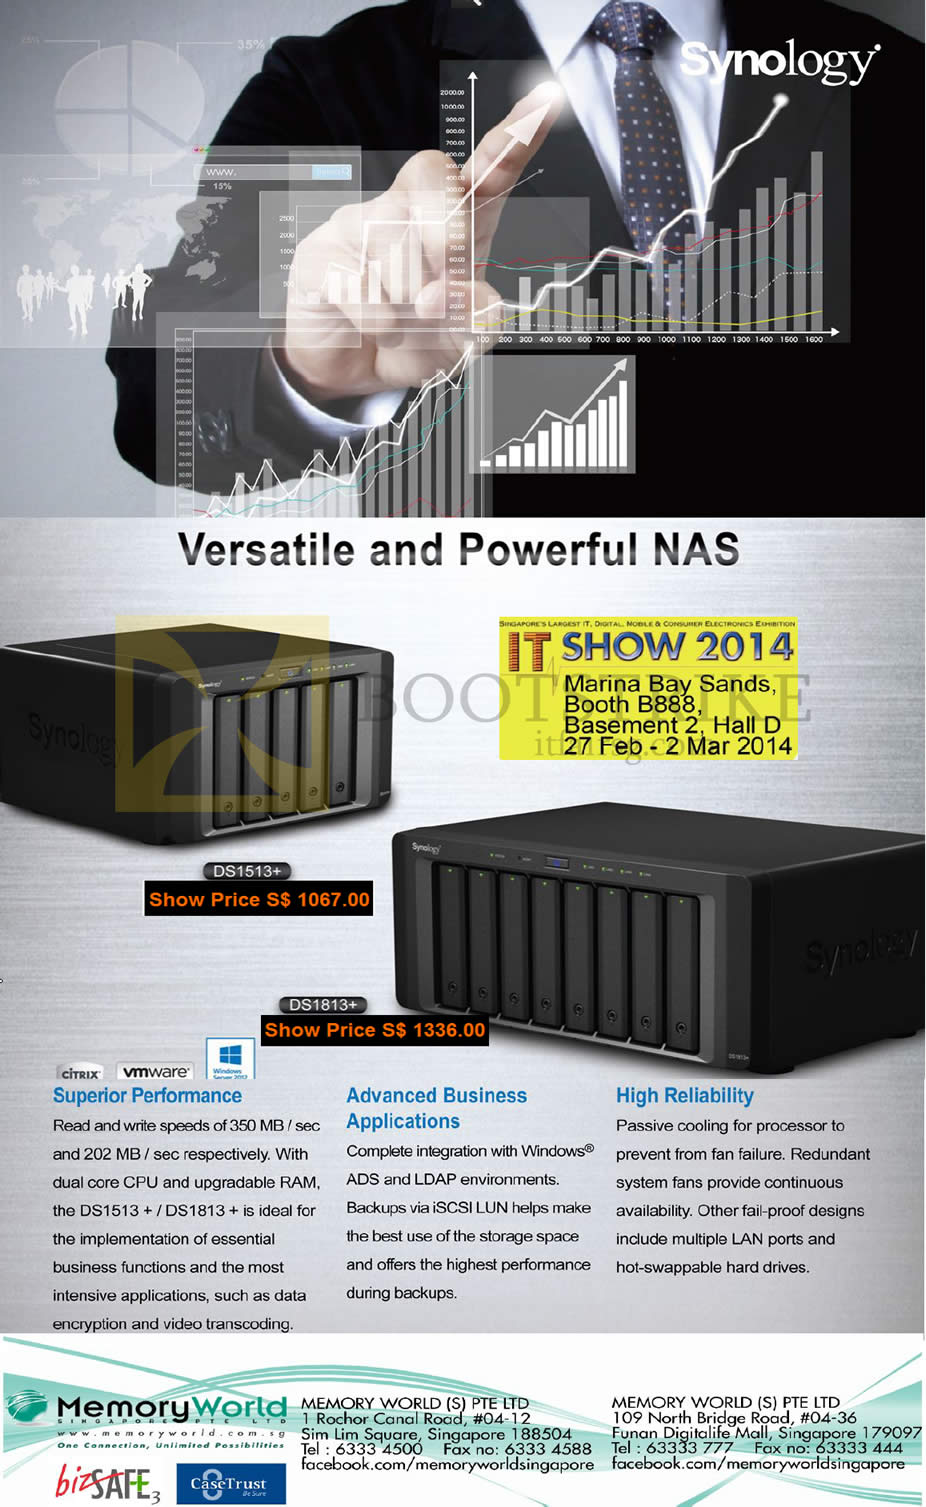 IT SHOW 2014 price list image brochure of Memory World NAS Synology DiskStation DS1513 Plus, DS1813 Plus